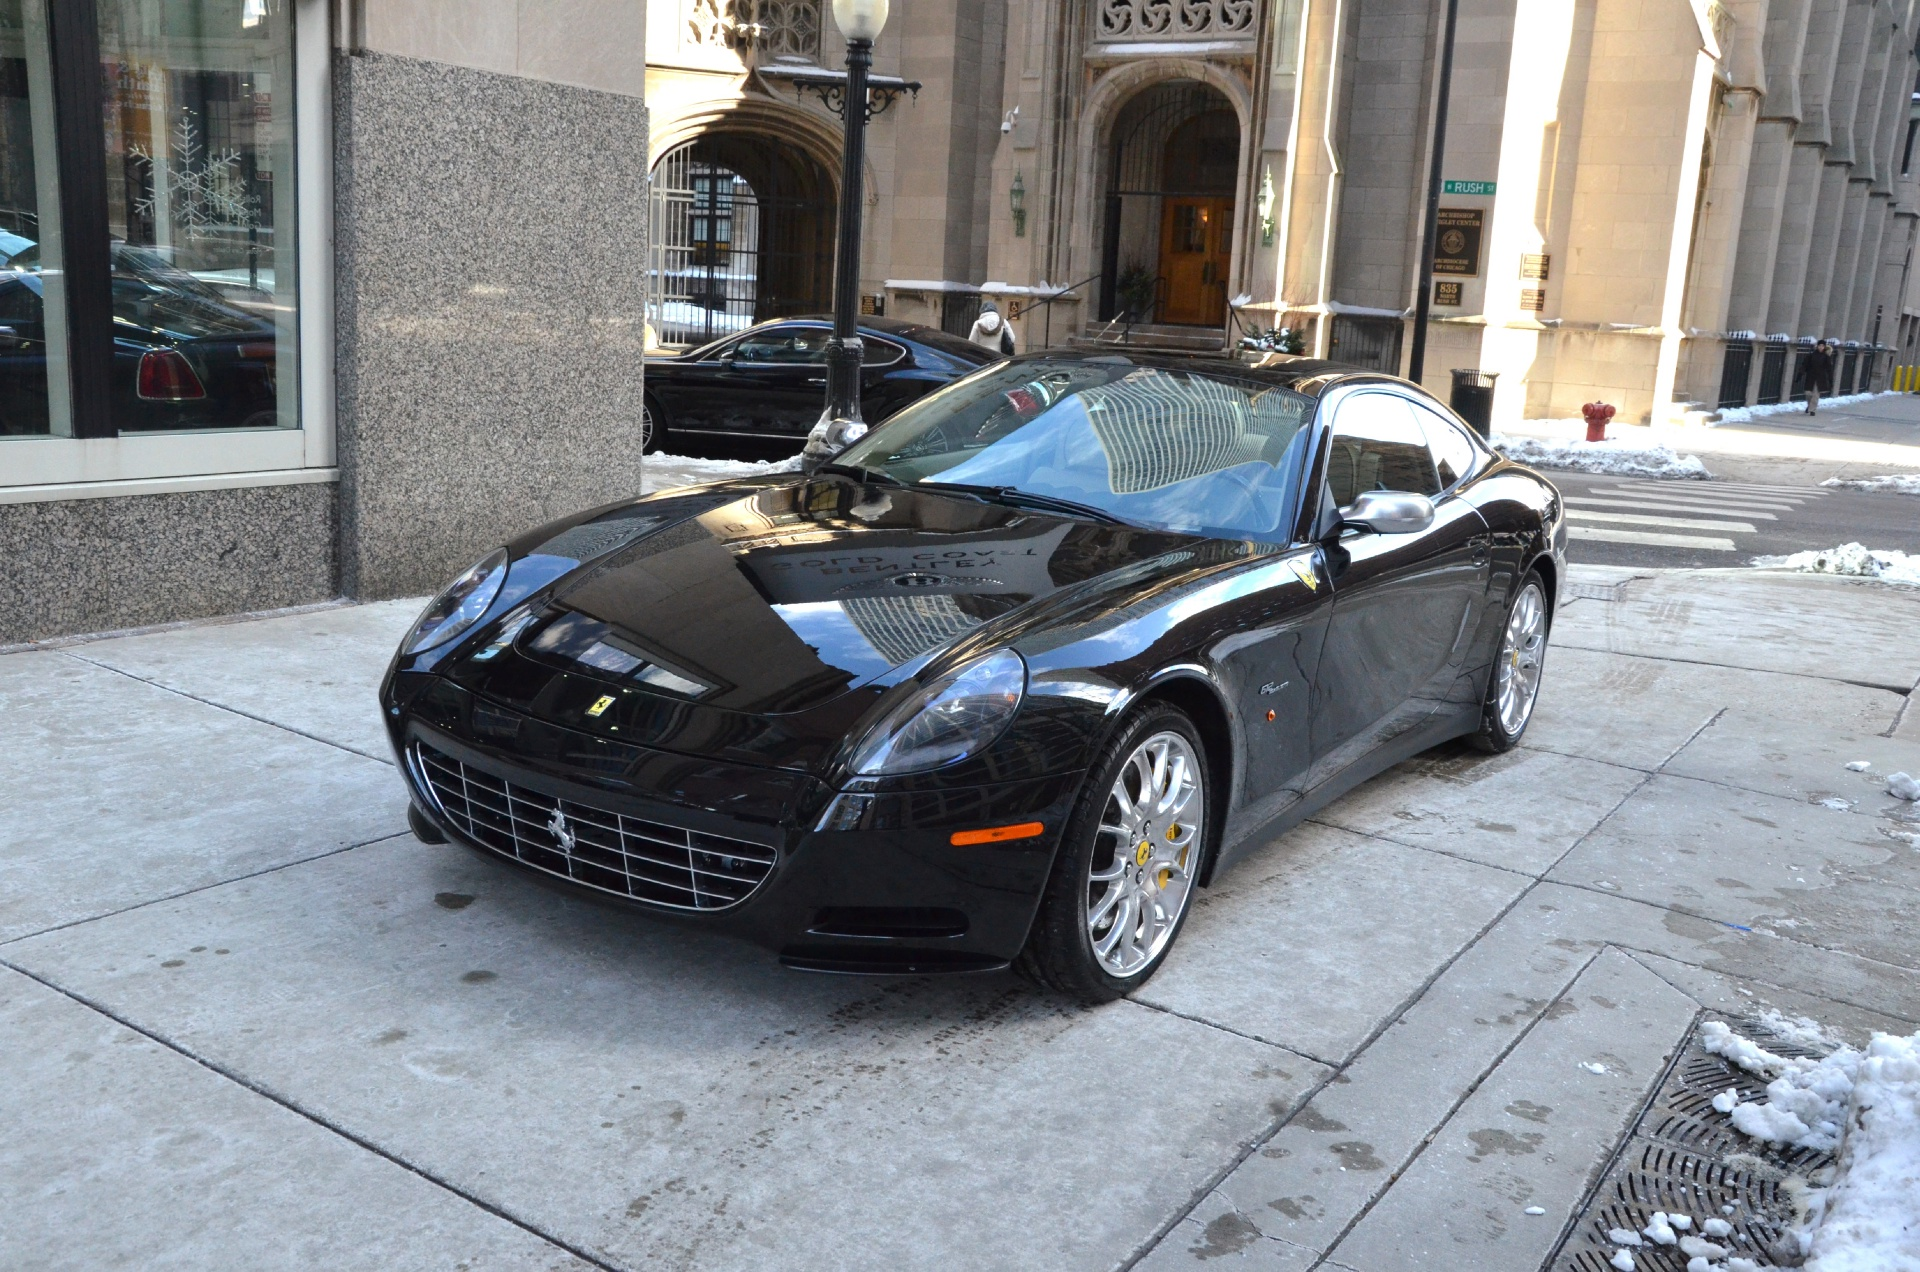 2010 ferrari 612 scaglietti used bentley used rolls royce used. Cars Review. Best American Auto & Cars Review